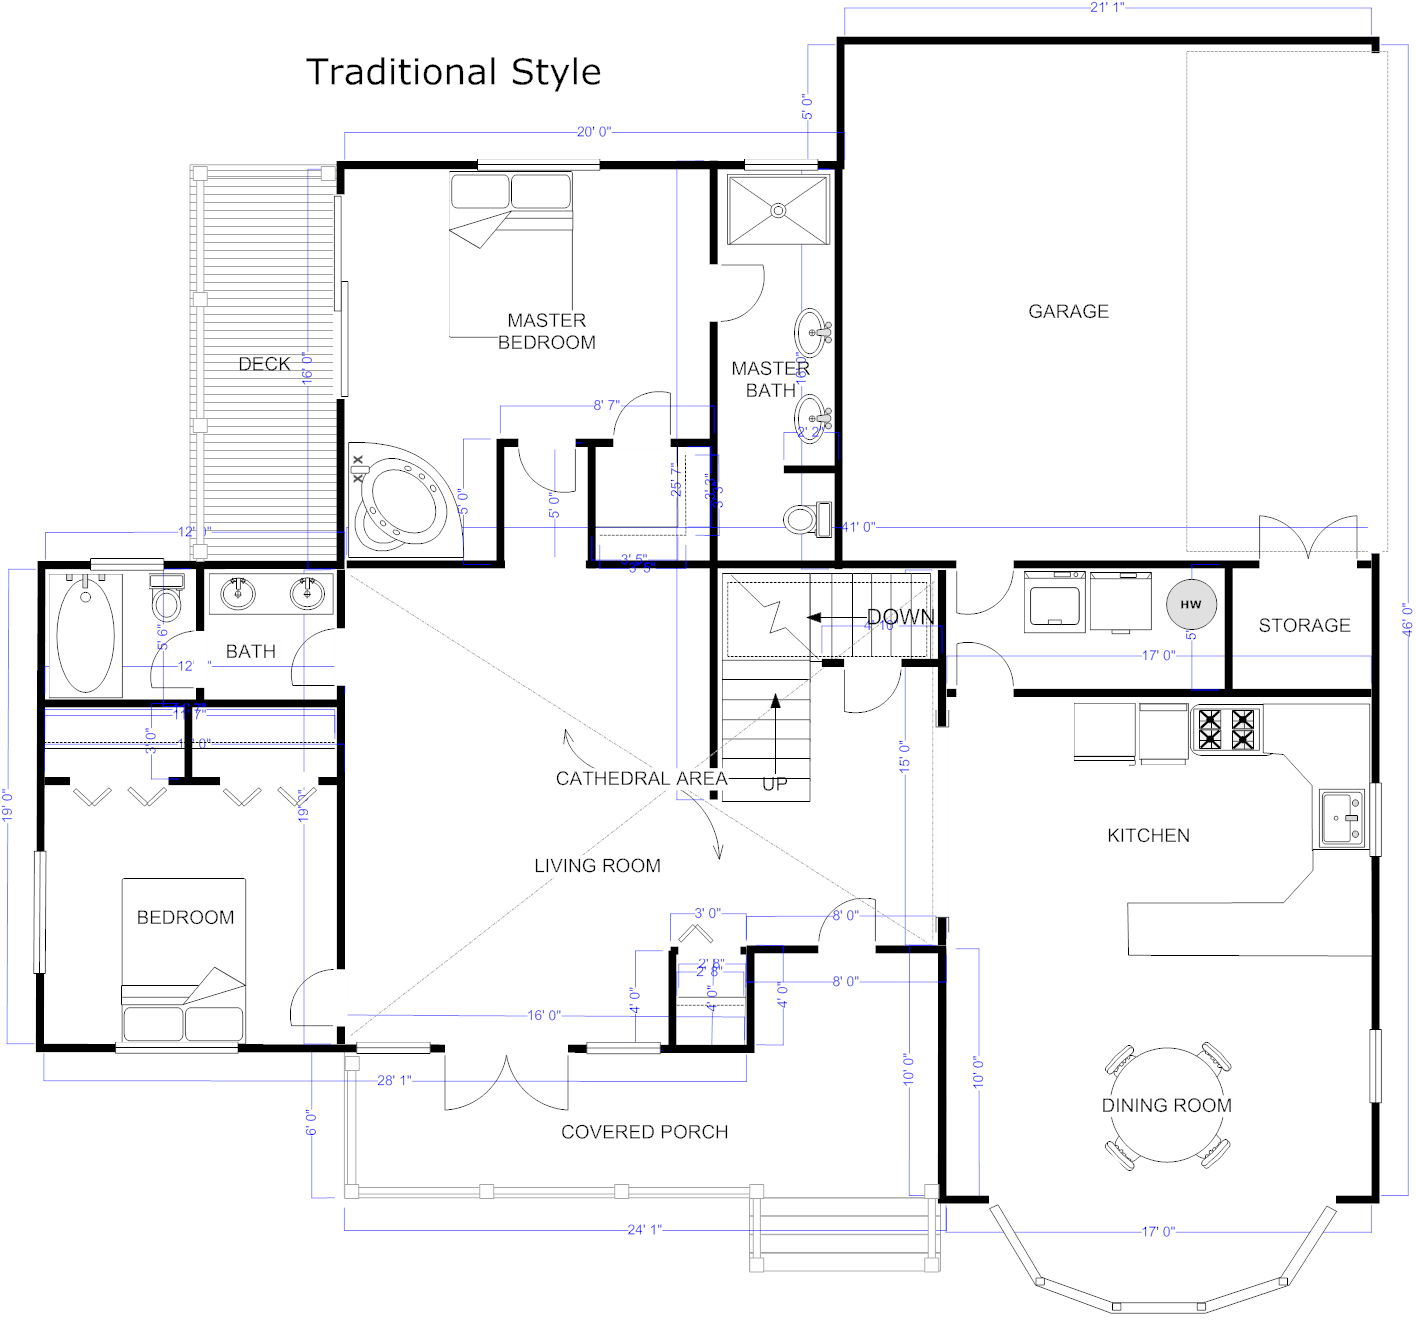 Floor Plan Creator Free floor plan maker - draw floor plans with floor plan templates